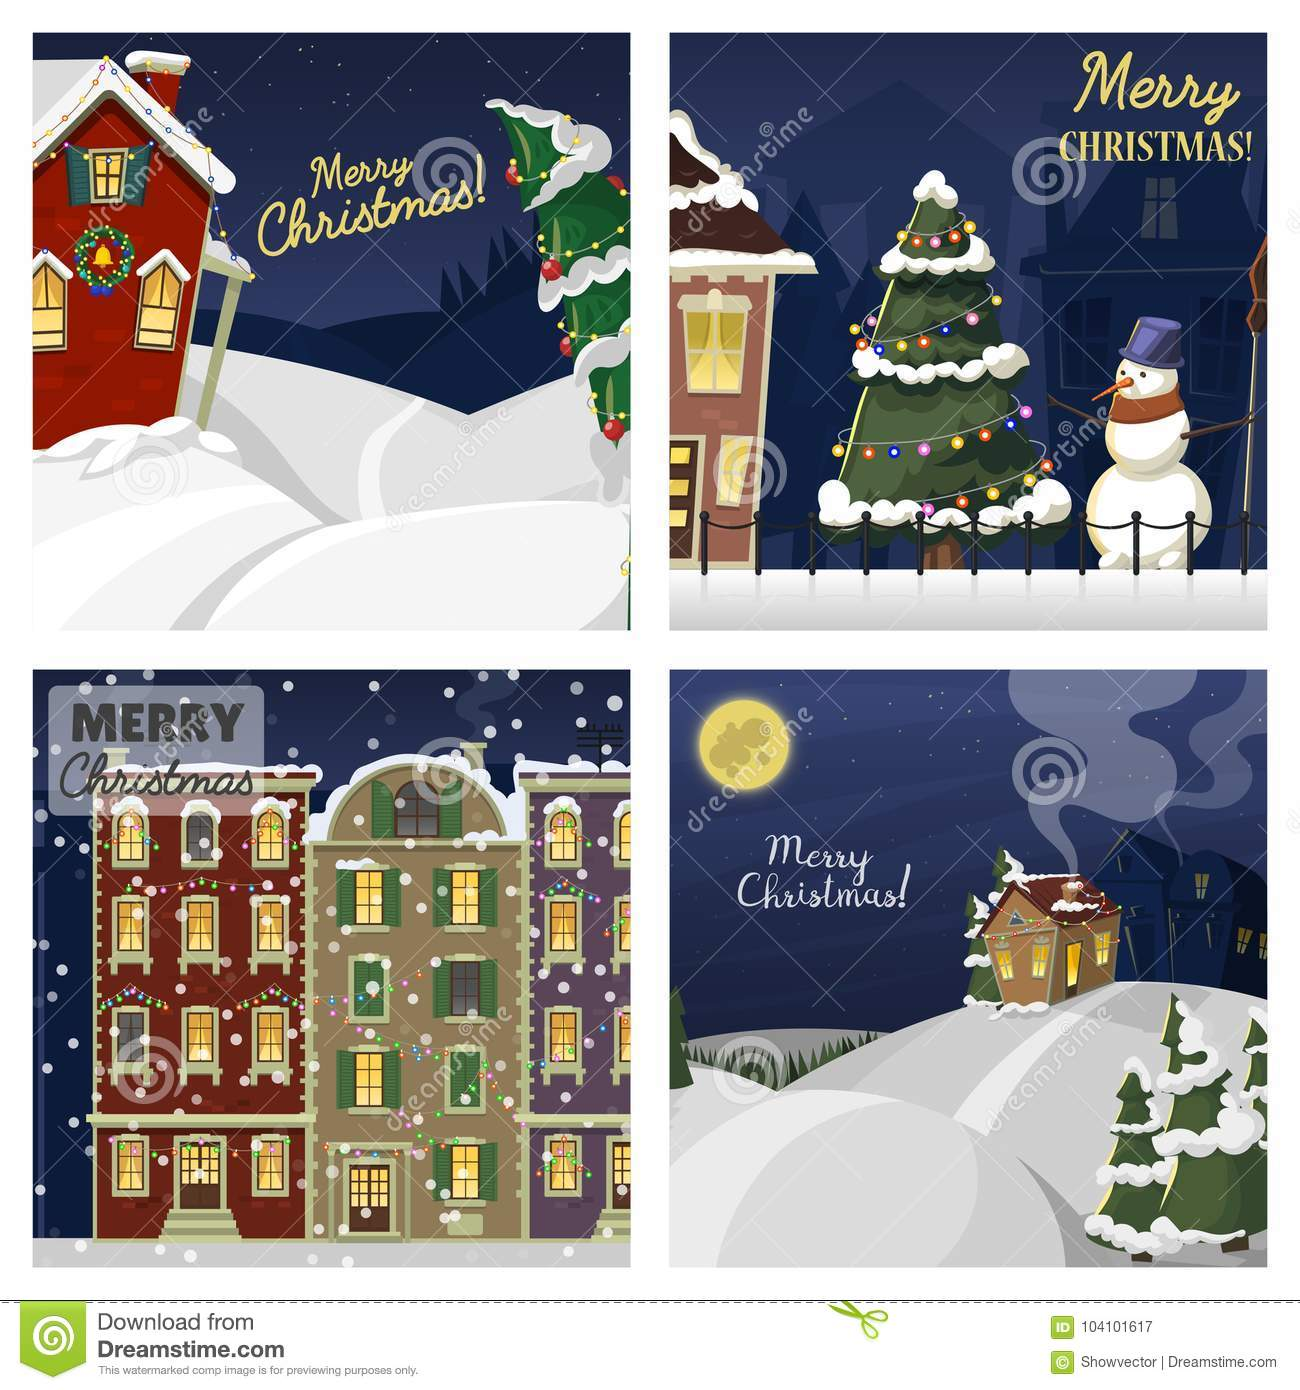 Download Winter Landscape With Christmas Houses Firtree Mountain Frozen Nature Wallpaper Beautiful Natural Vector Illustration